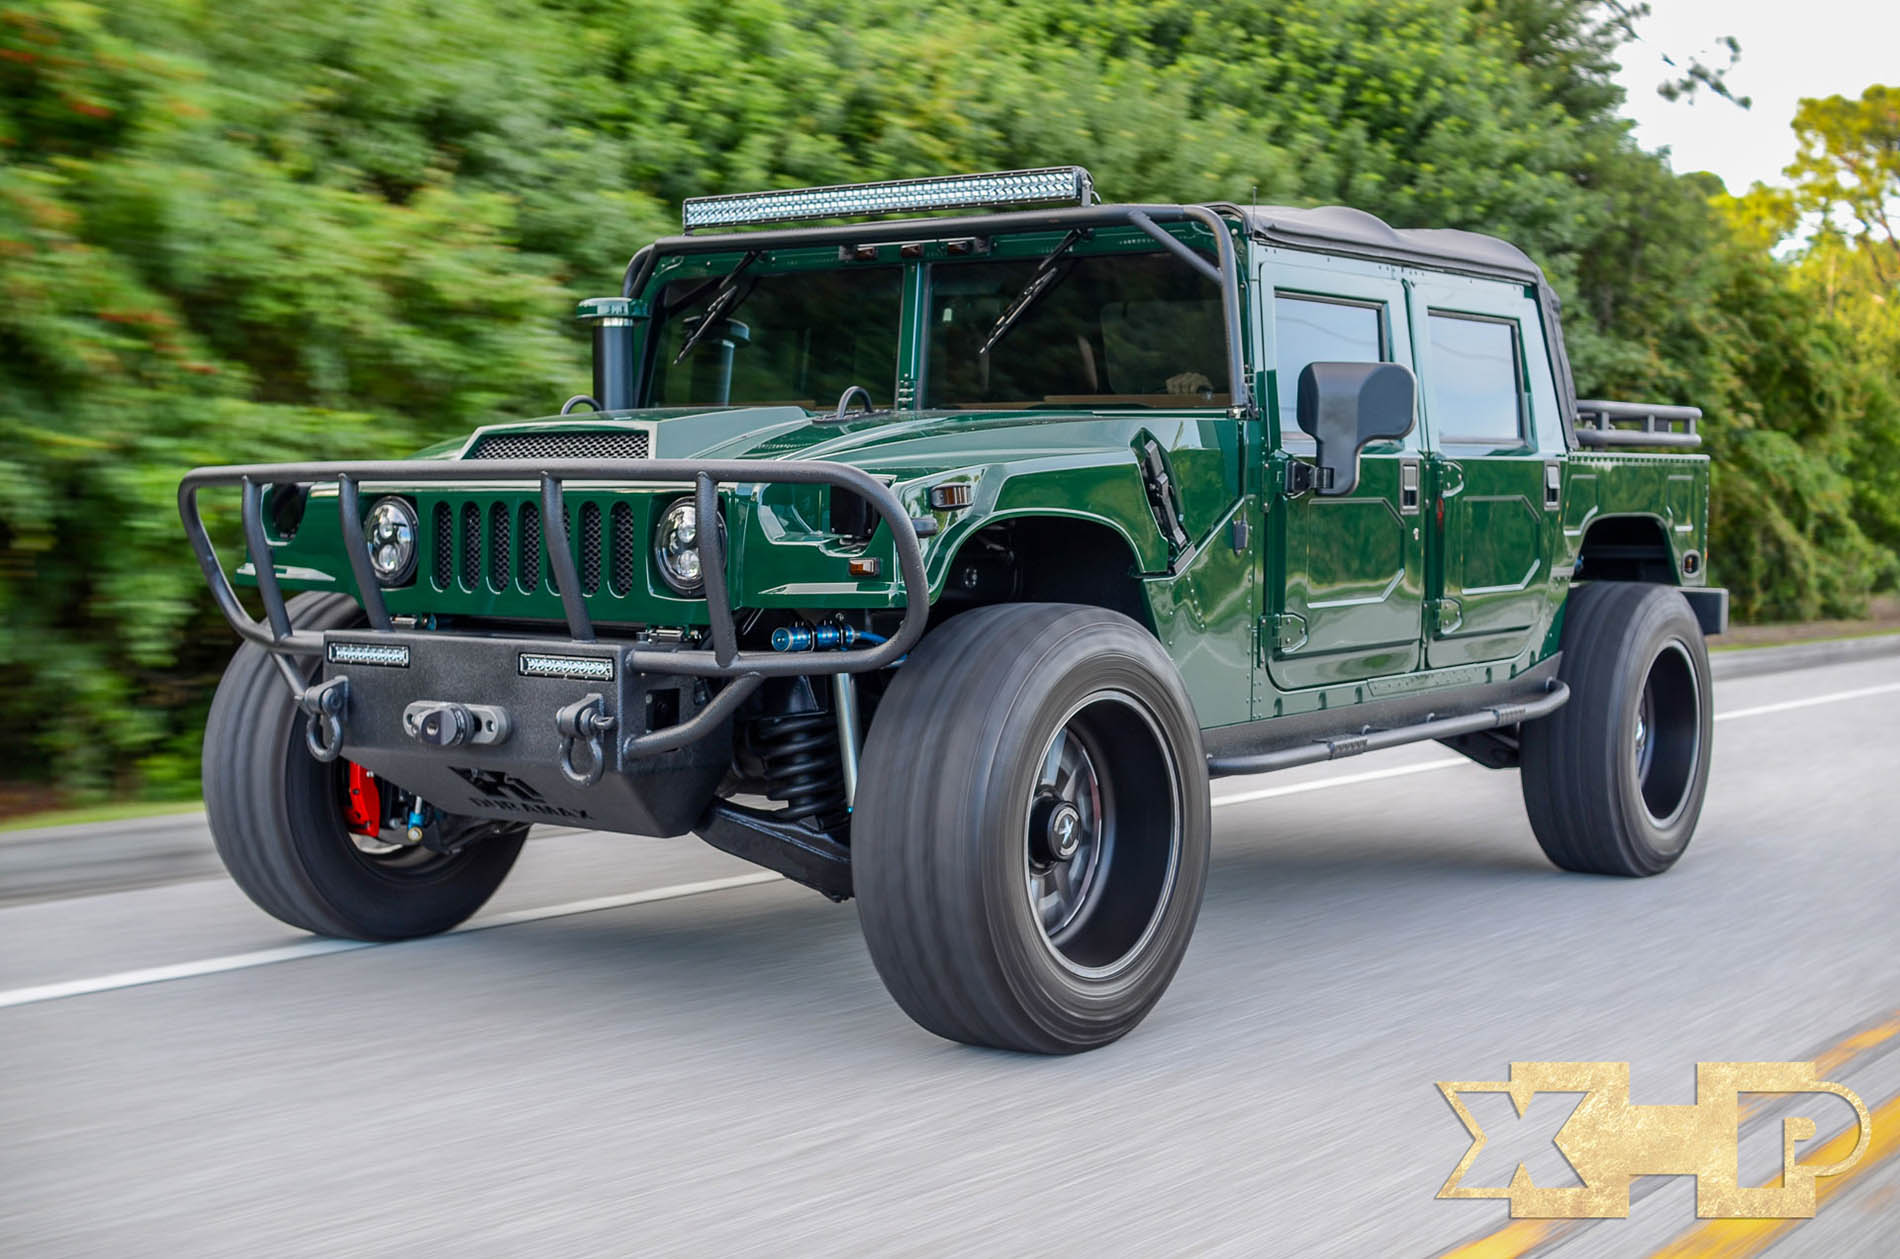 hight resolution of this 1996 hummer h1 was built for chas bruck by adam pela and his company x treme hummer performance in jupiter florida the company started by replacing